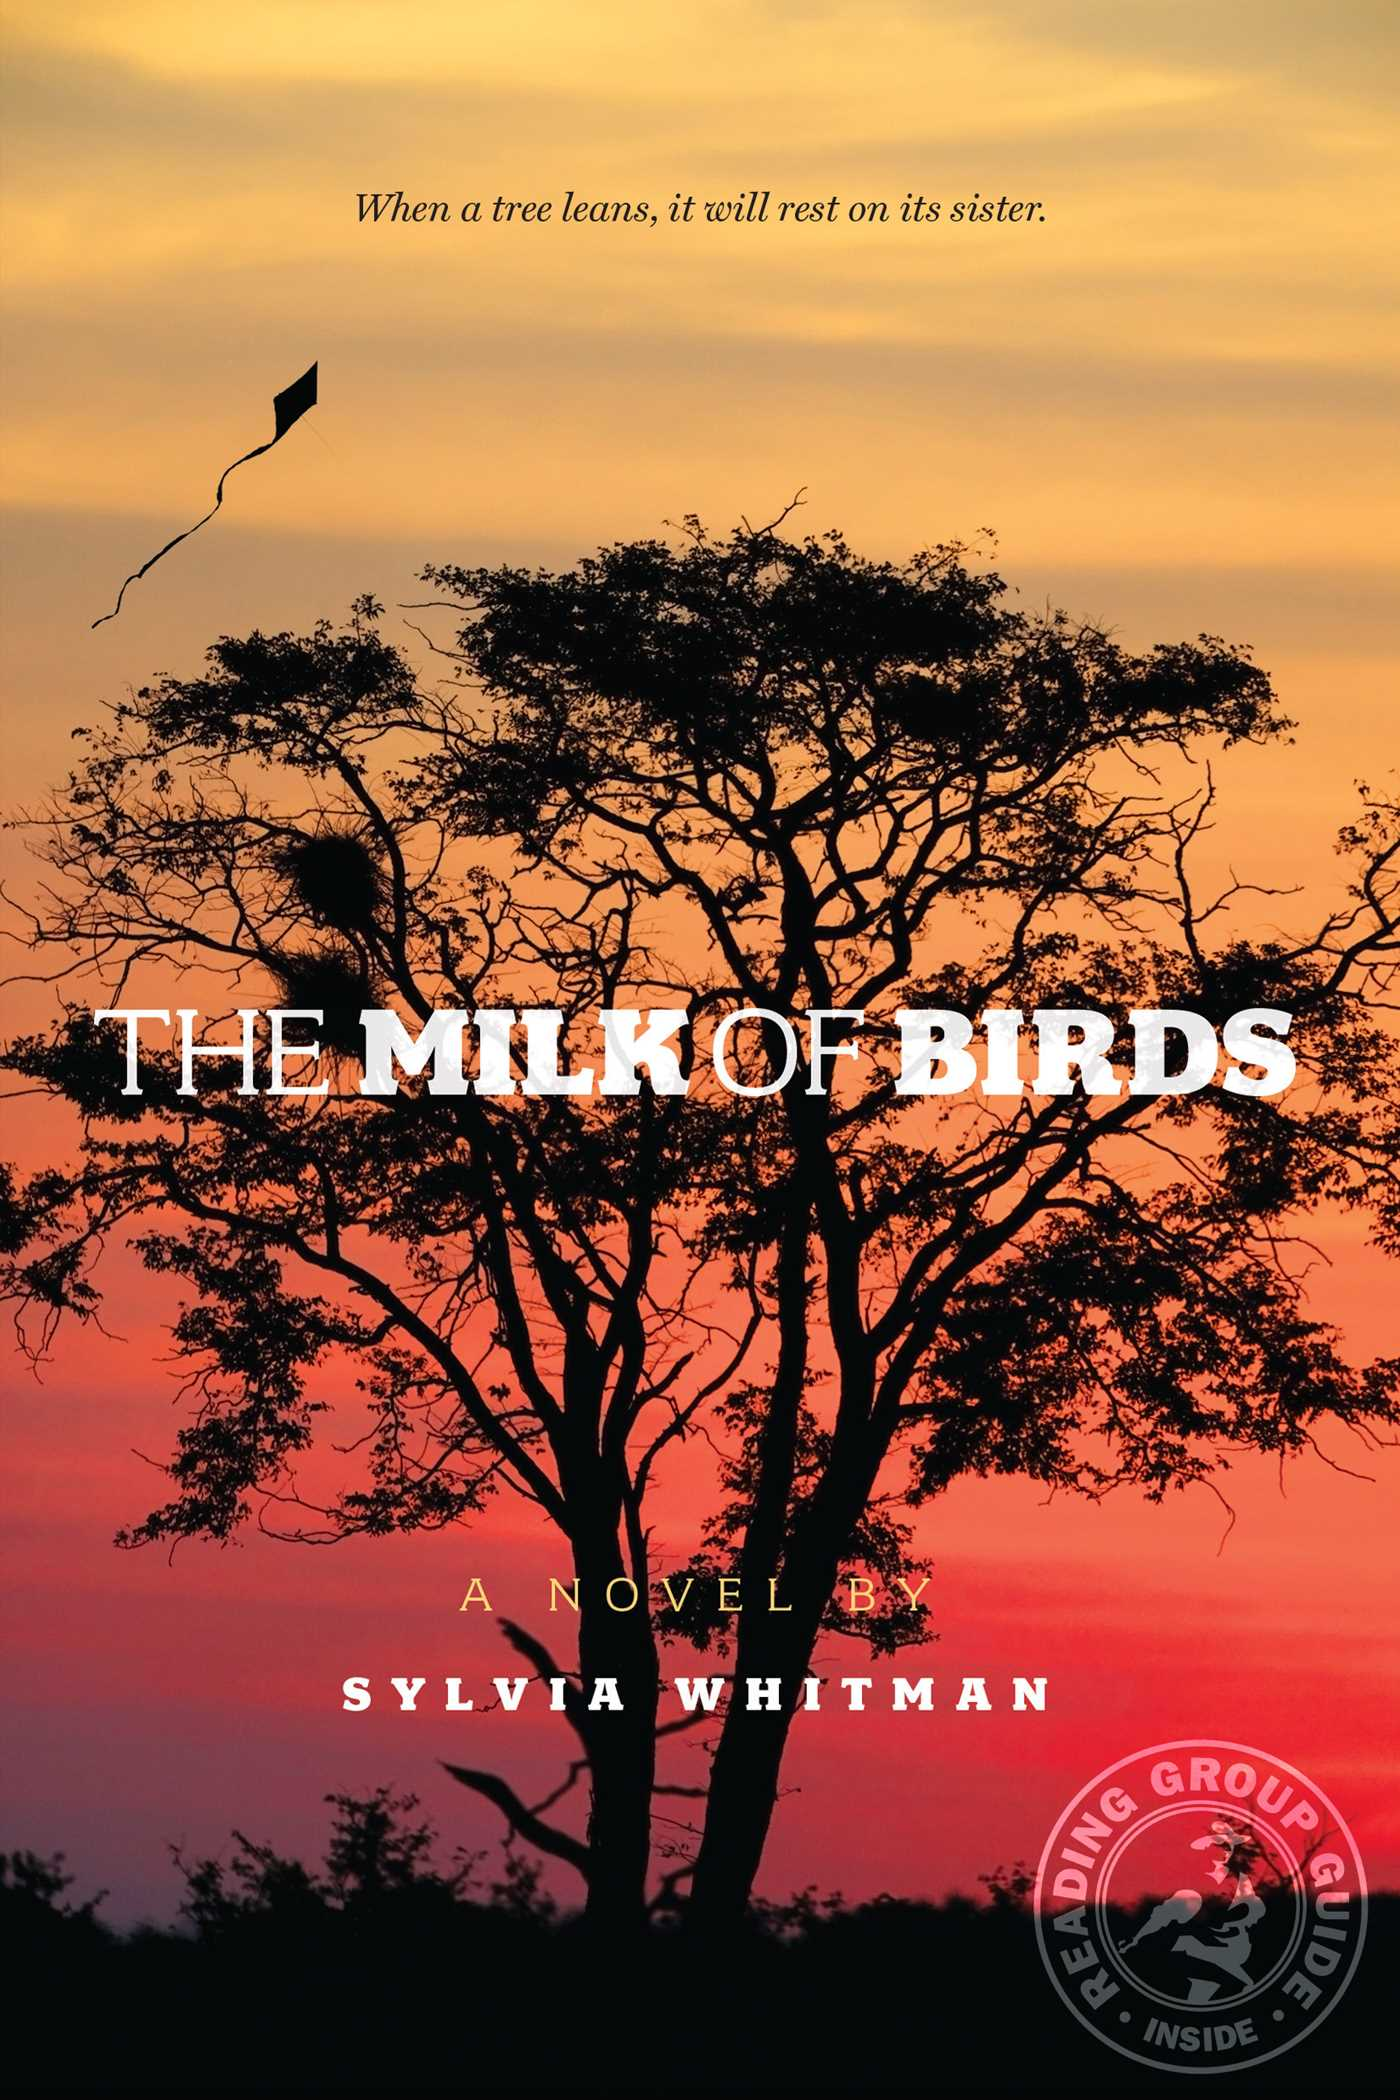 Image result for The Milk of Birds